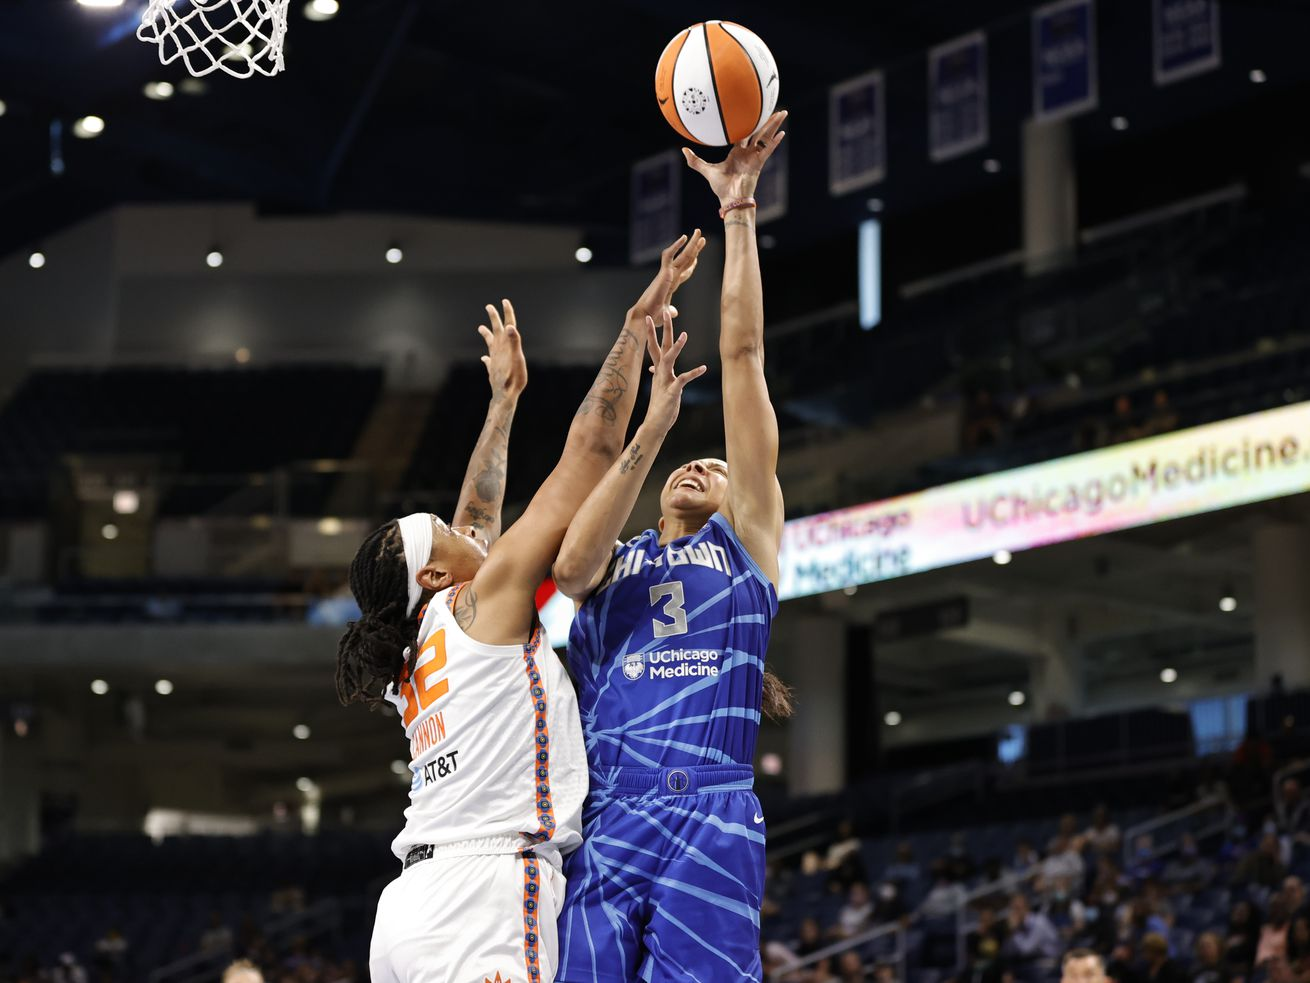 Sky get statement win beating Eastern Conference leading Sun 81-75